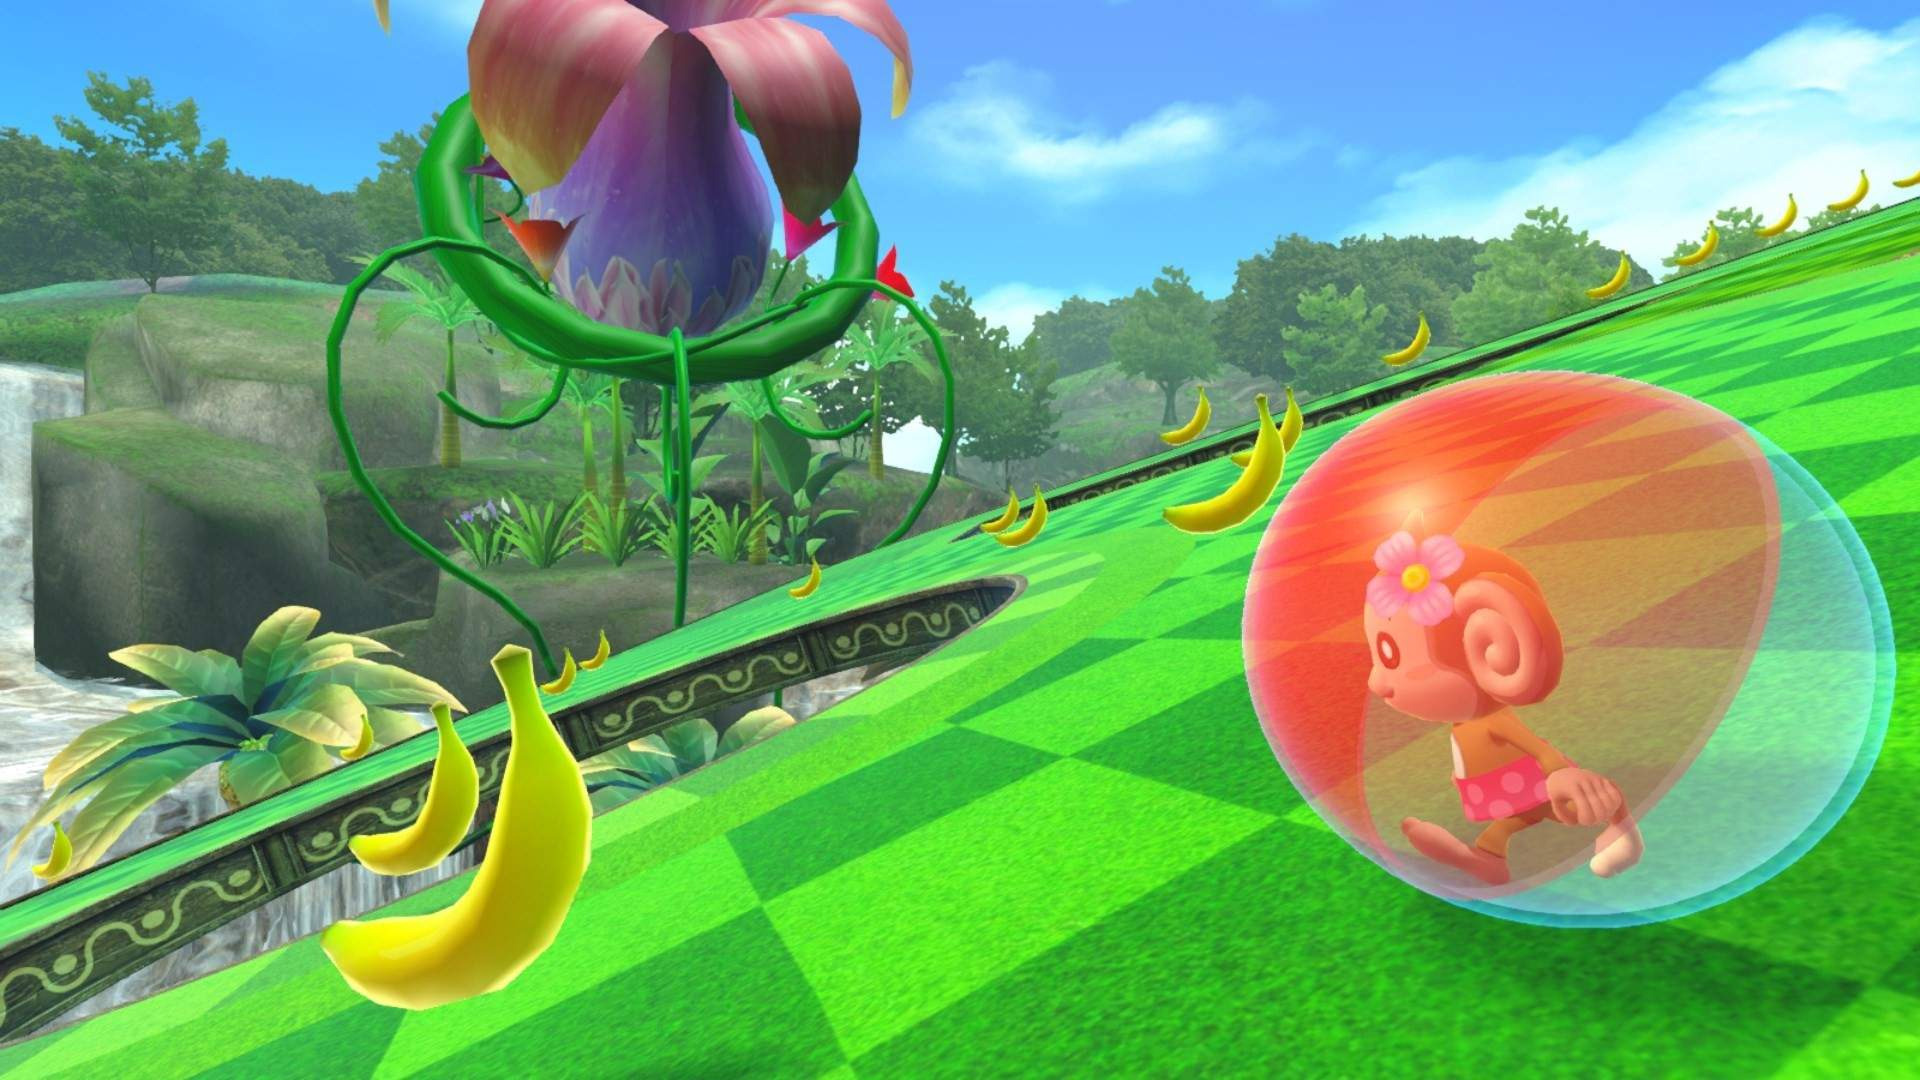 Super Monkey Ball Banana Mania – October 5 - Optimized for Xbox Series X|S – Smart Delivery